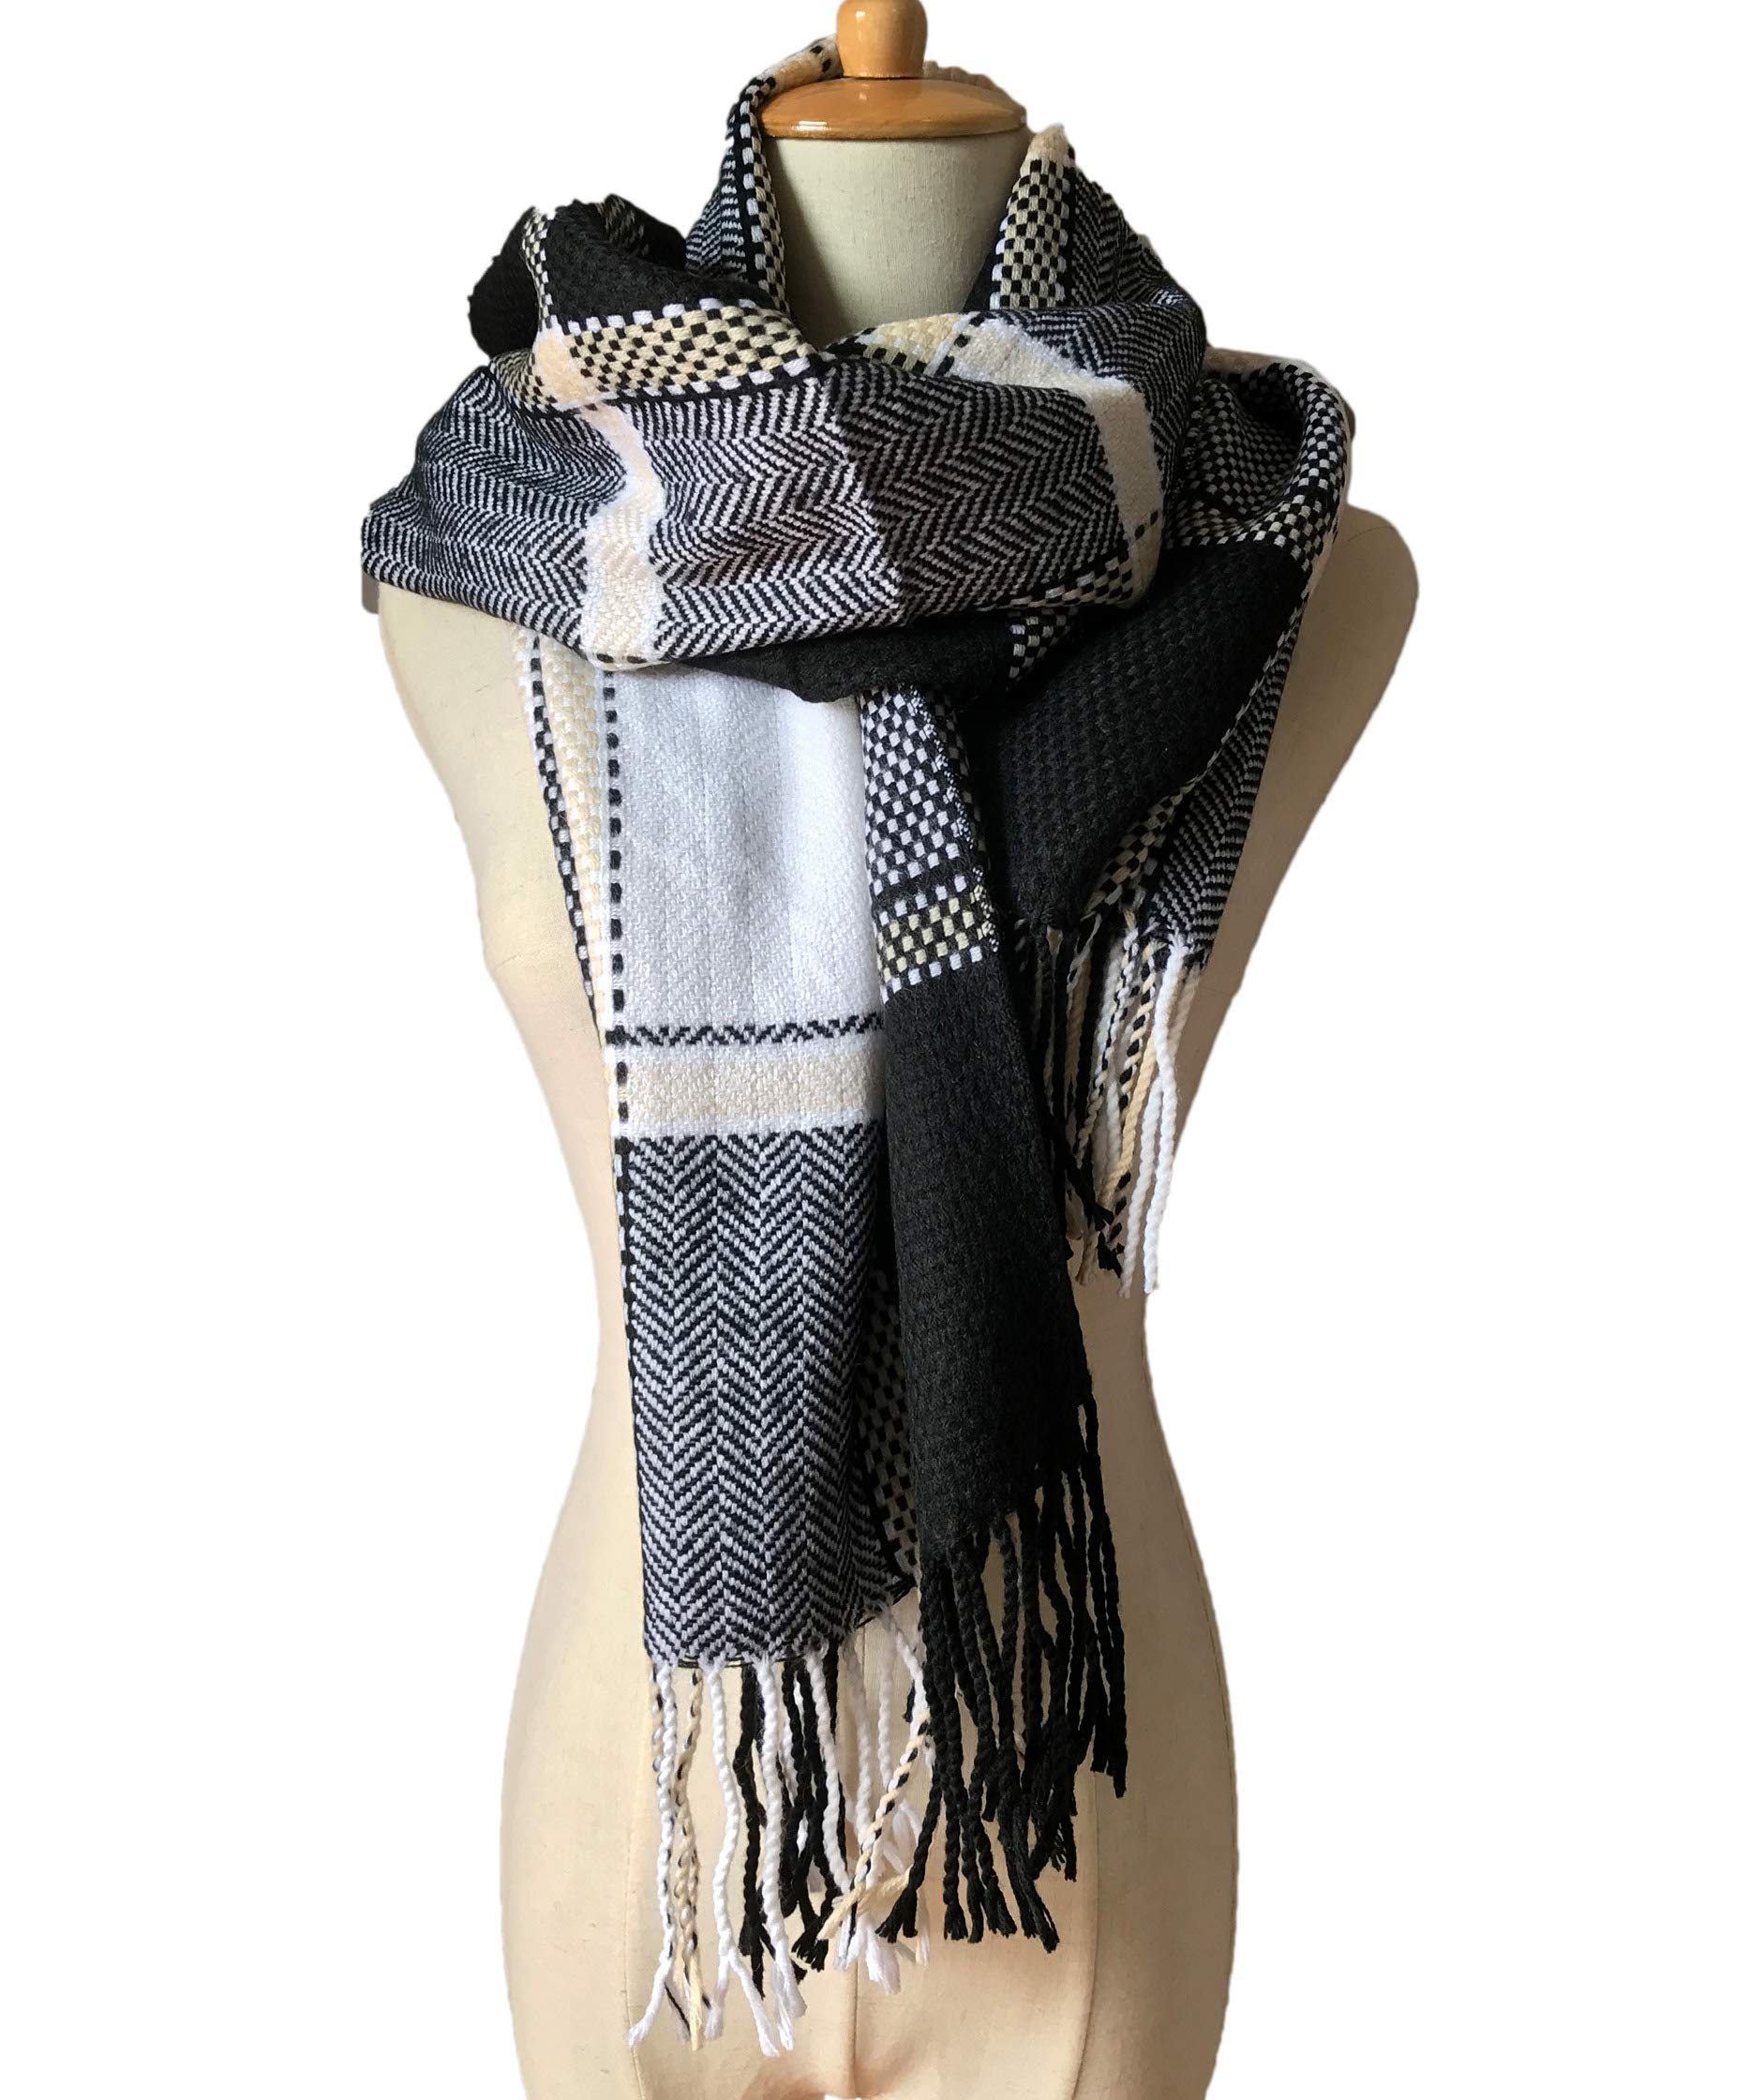 Yige Women's Fashion Long Shawl Big Grid Winter Warm Lattice Large Scarf | plaid shawl Black